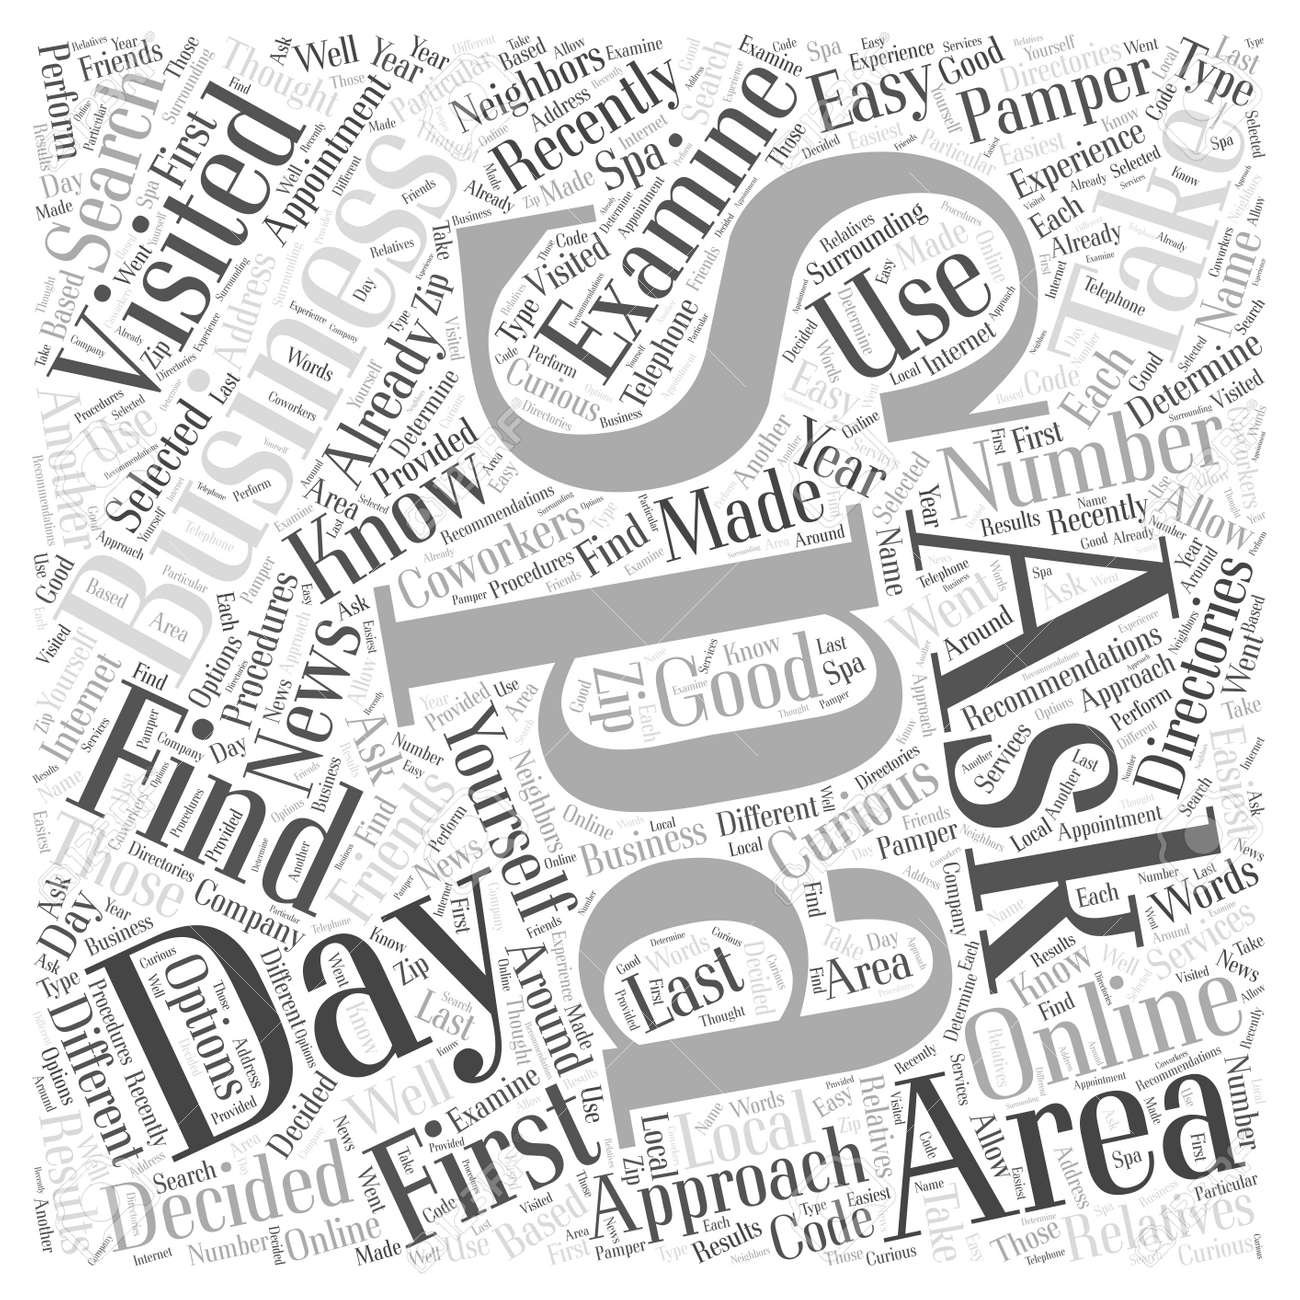 how to find day spas in your area word cloud concept royalty free Production Word how to find day spas in your area word cloud concept stock vector 67486136